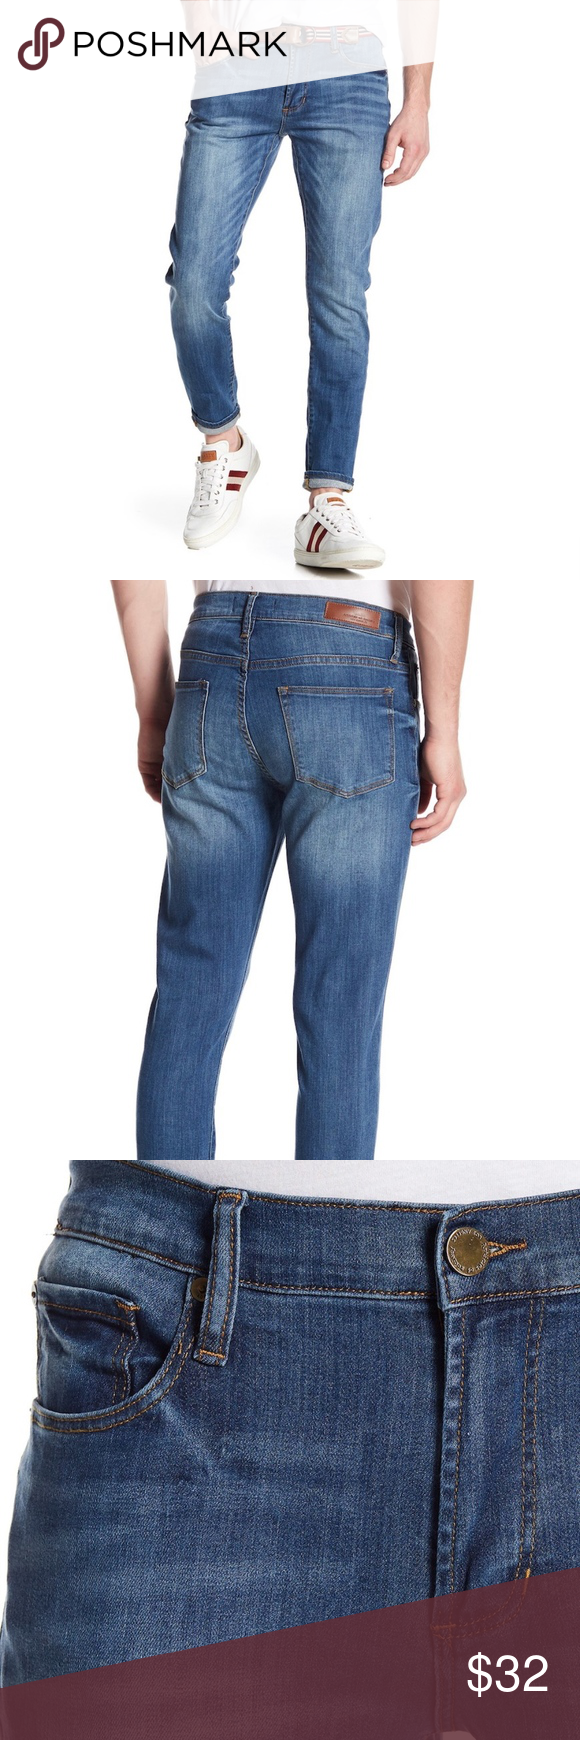 6fc06c6e6d Articles of Society Dylan Washed Denim Jeans 34 Slim Dylan-Zip fly with  button closure